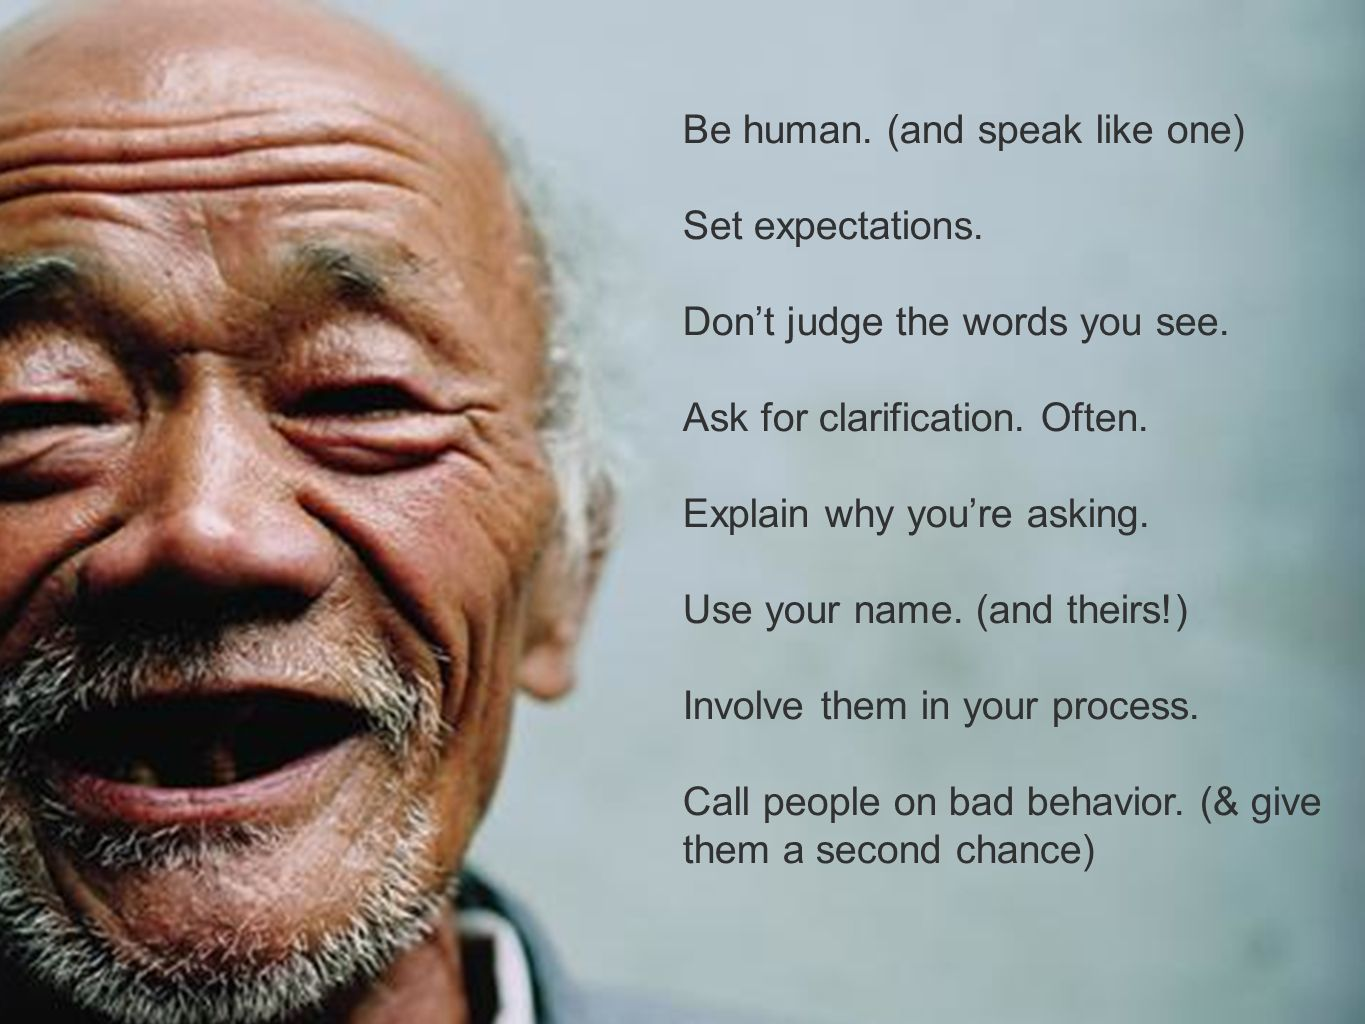 Be human. (and speak like one) Set expectations. Dont judge the words you see. Ask for clarification. Often. Explain why youre asking. Use your name.